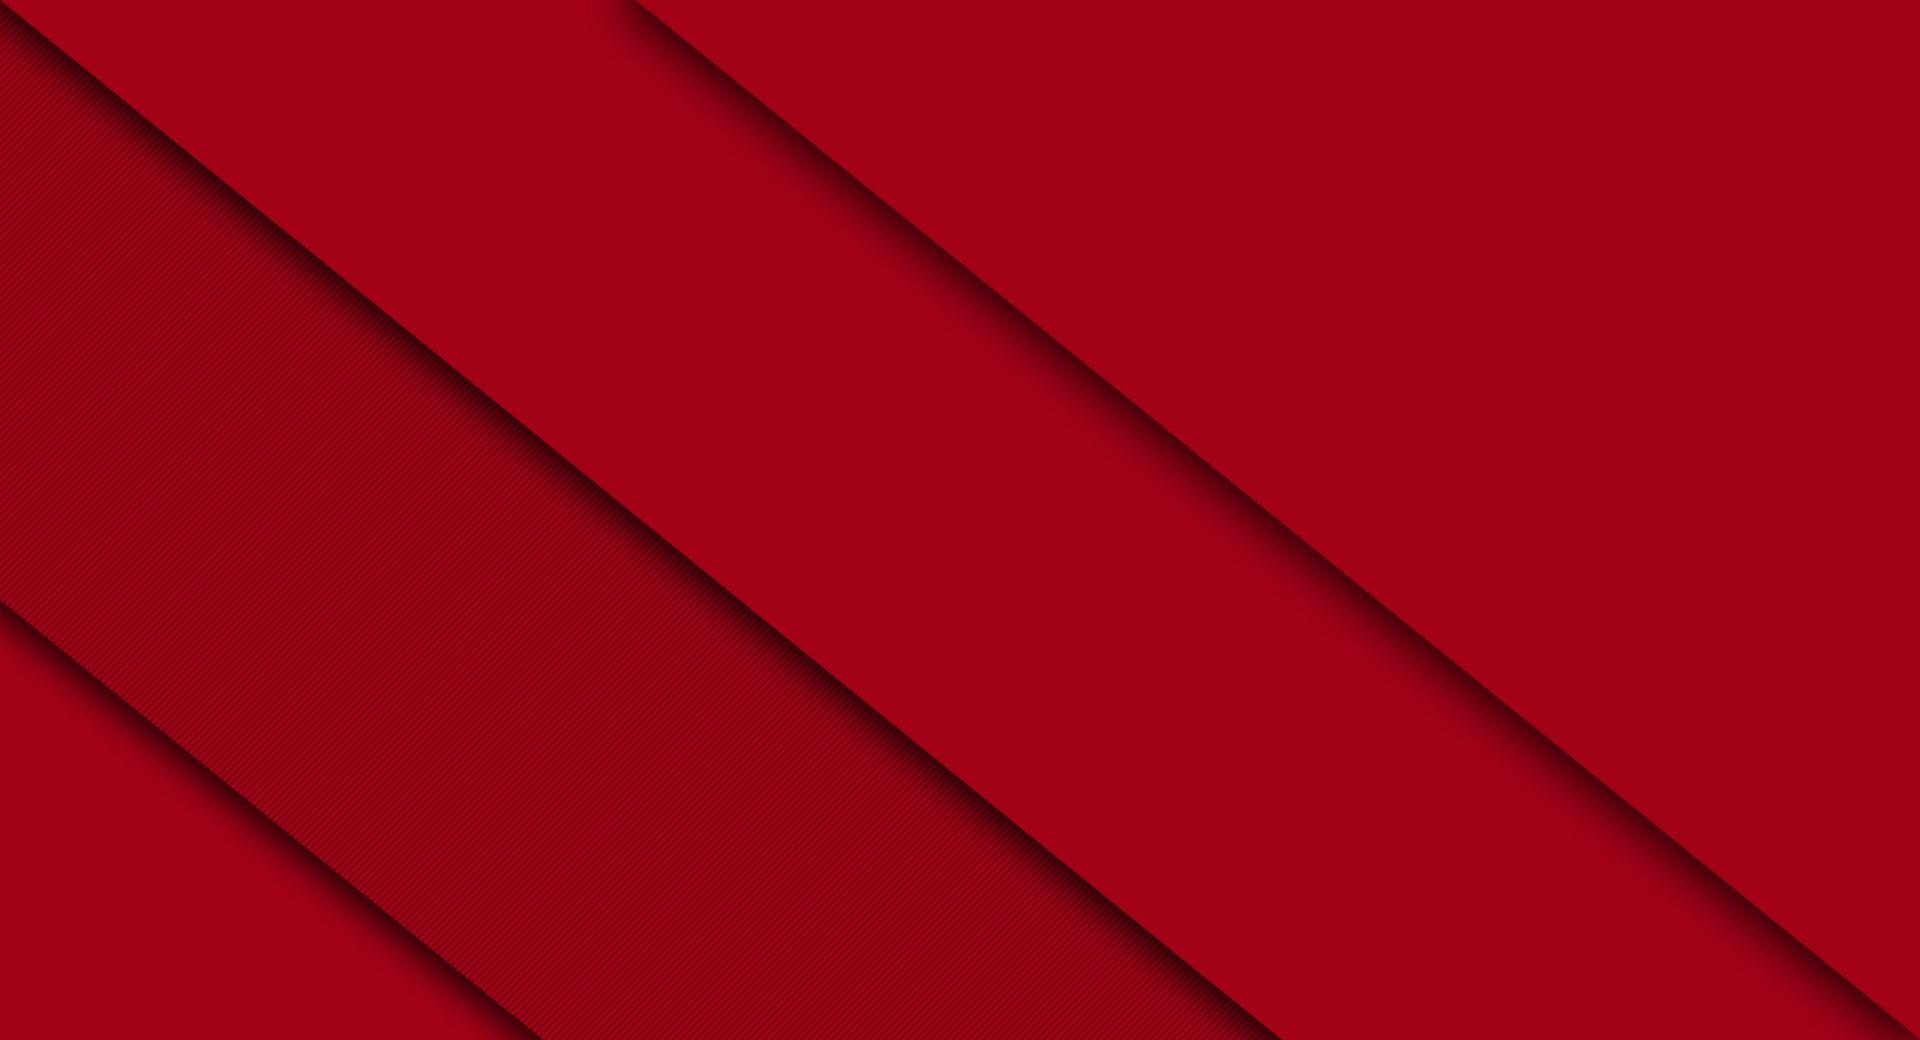 Material Design RED wallpapers HD quality